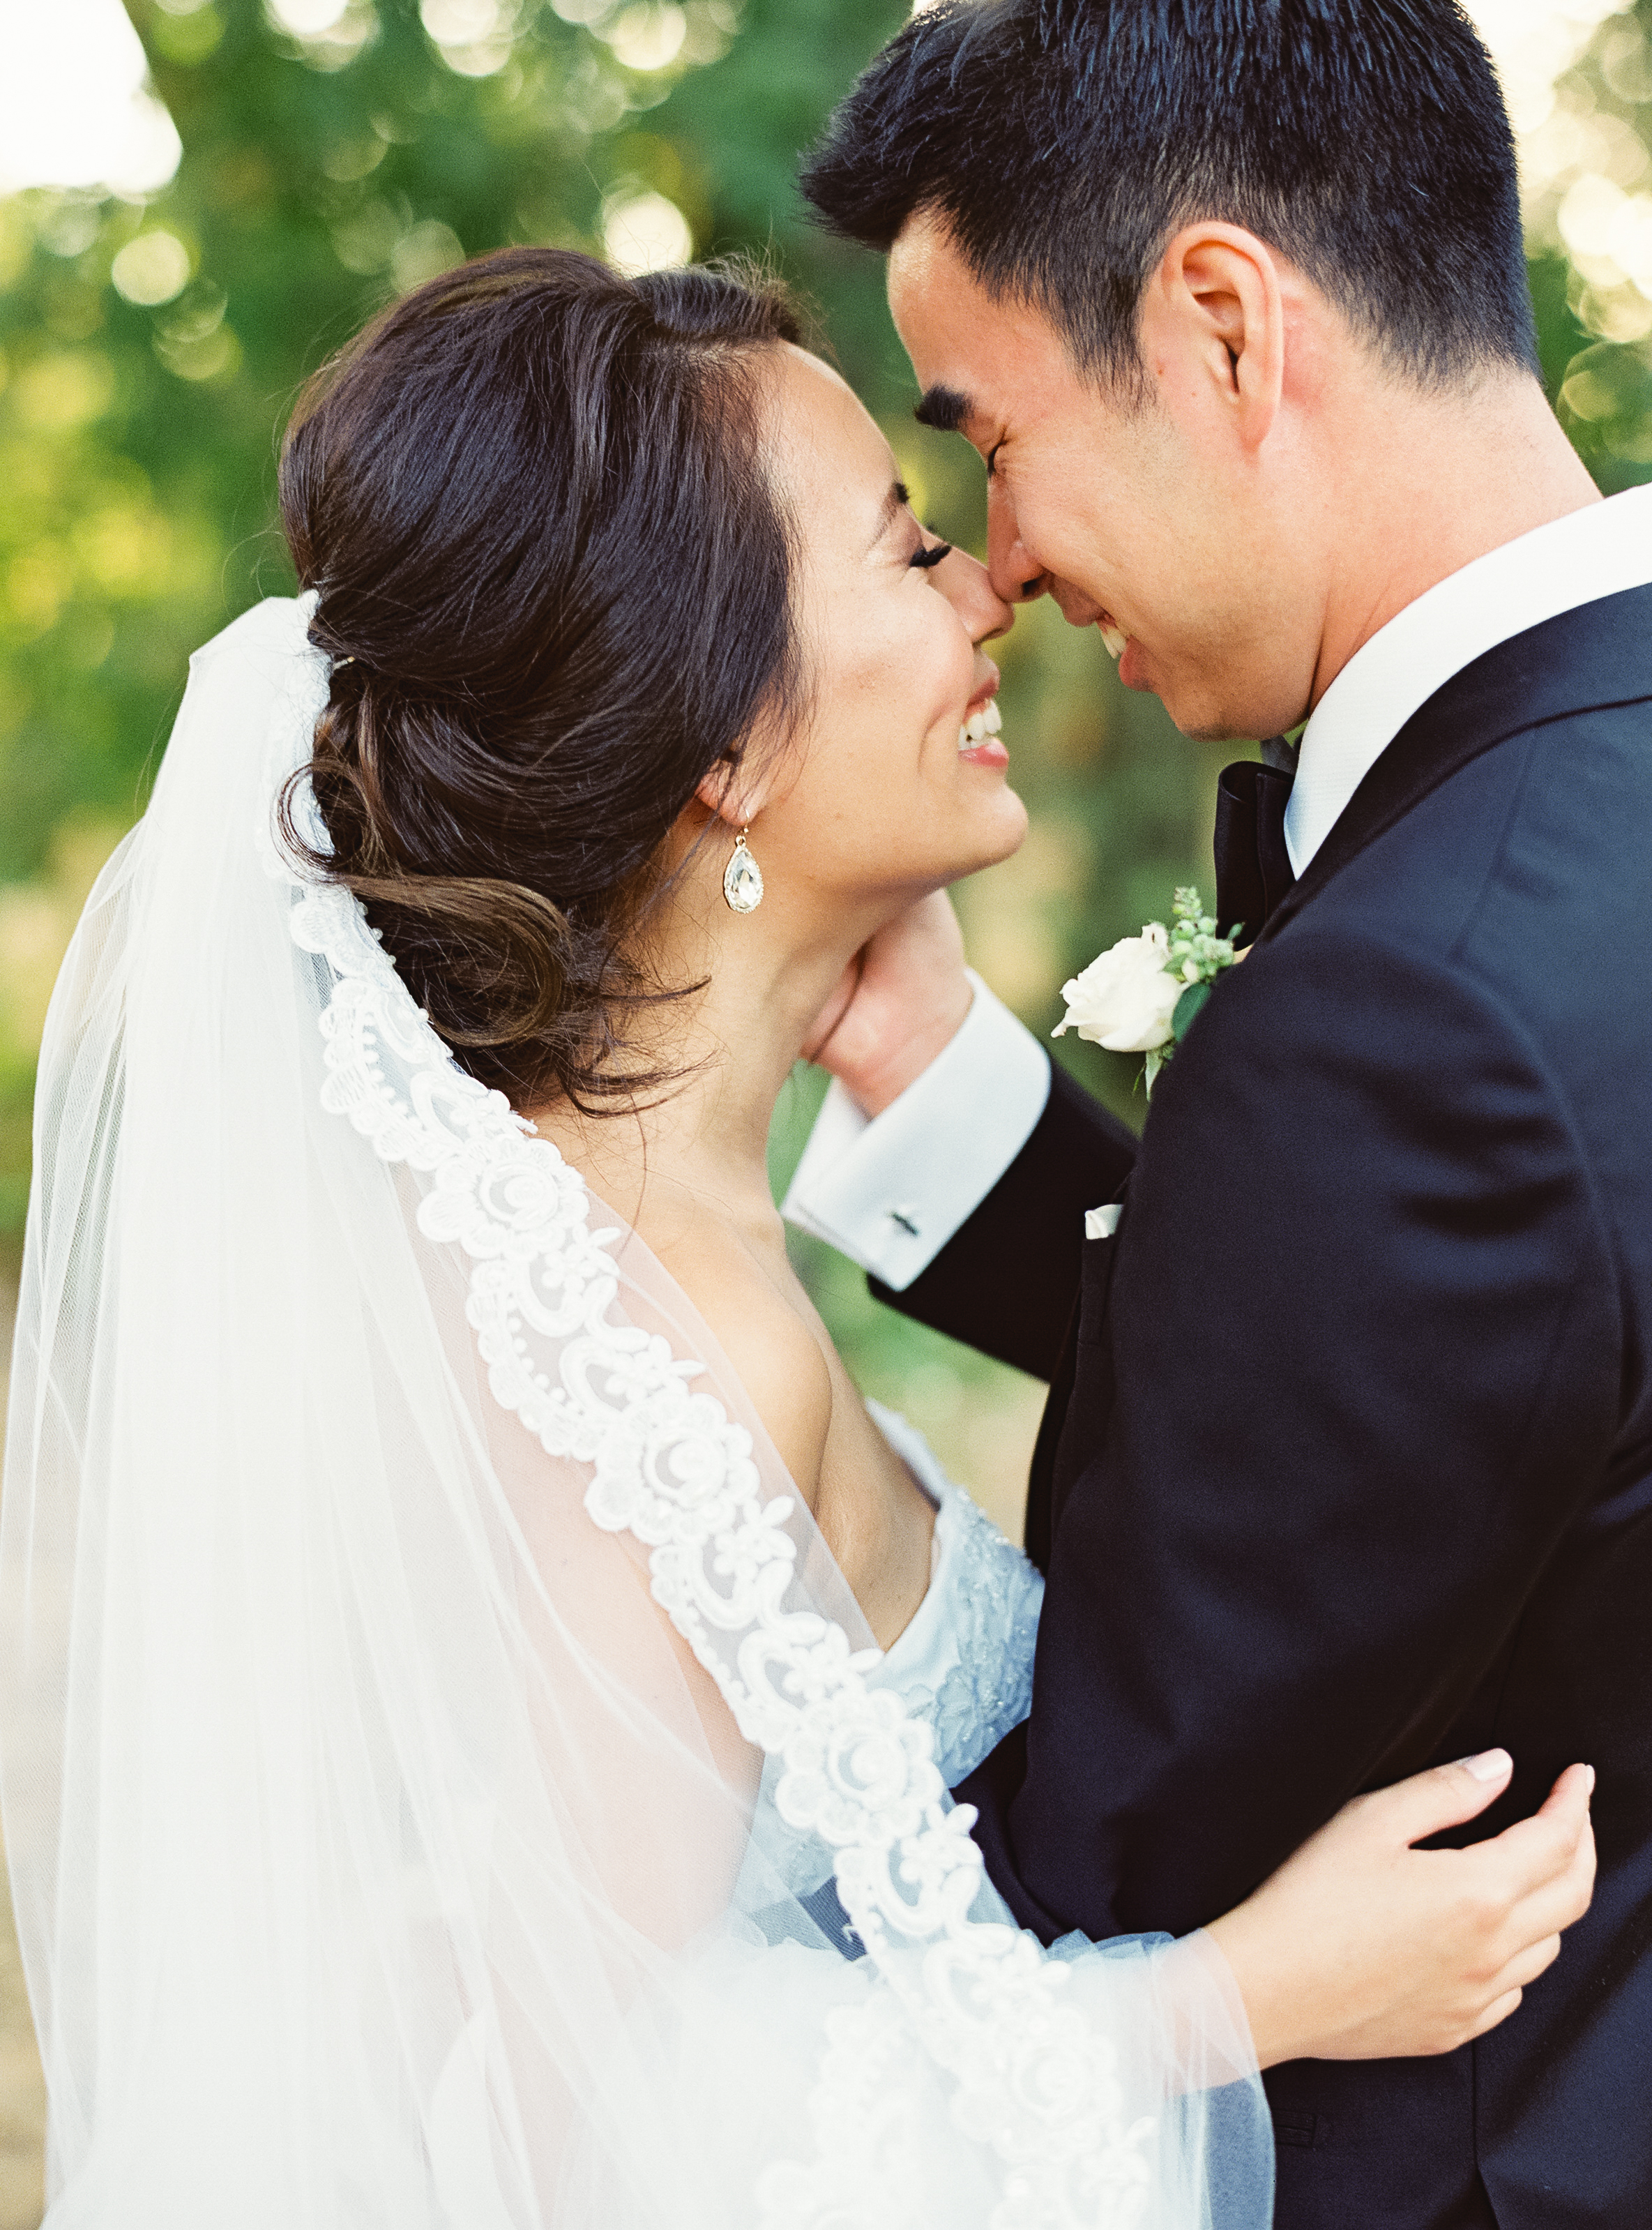 Napa Valley Wedding | Michele Beckwith | Chinese Wedding | Vineyard Wedding | Fine Art Wedding Blog | Joy Wed | Canadian Wedding Blog